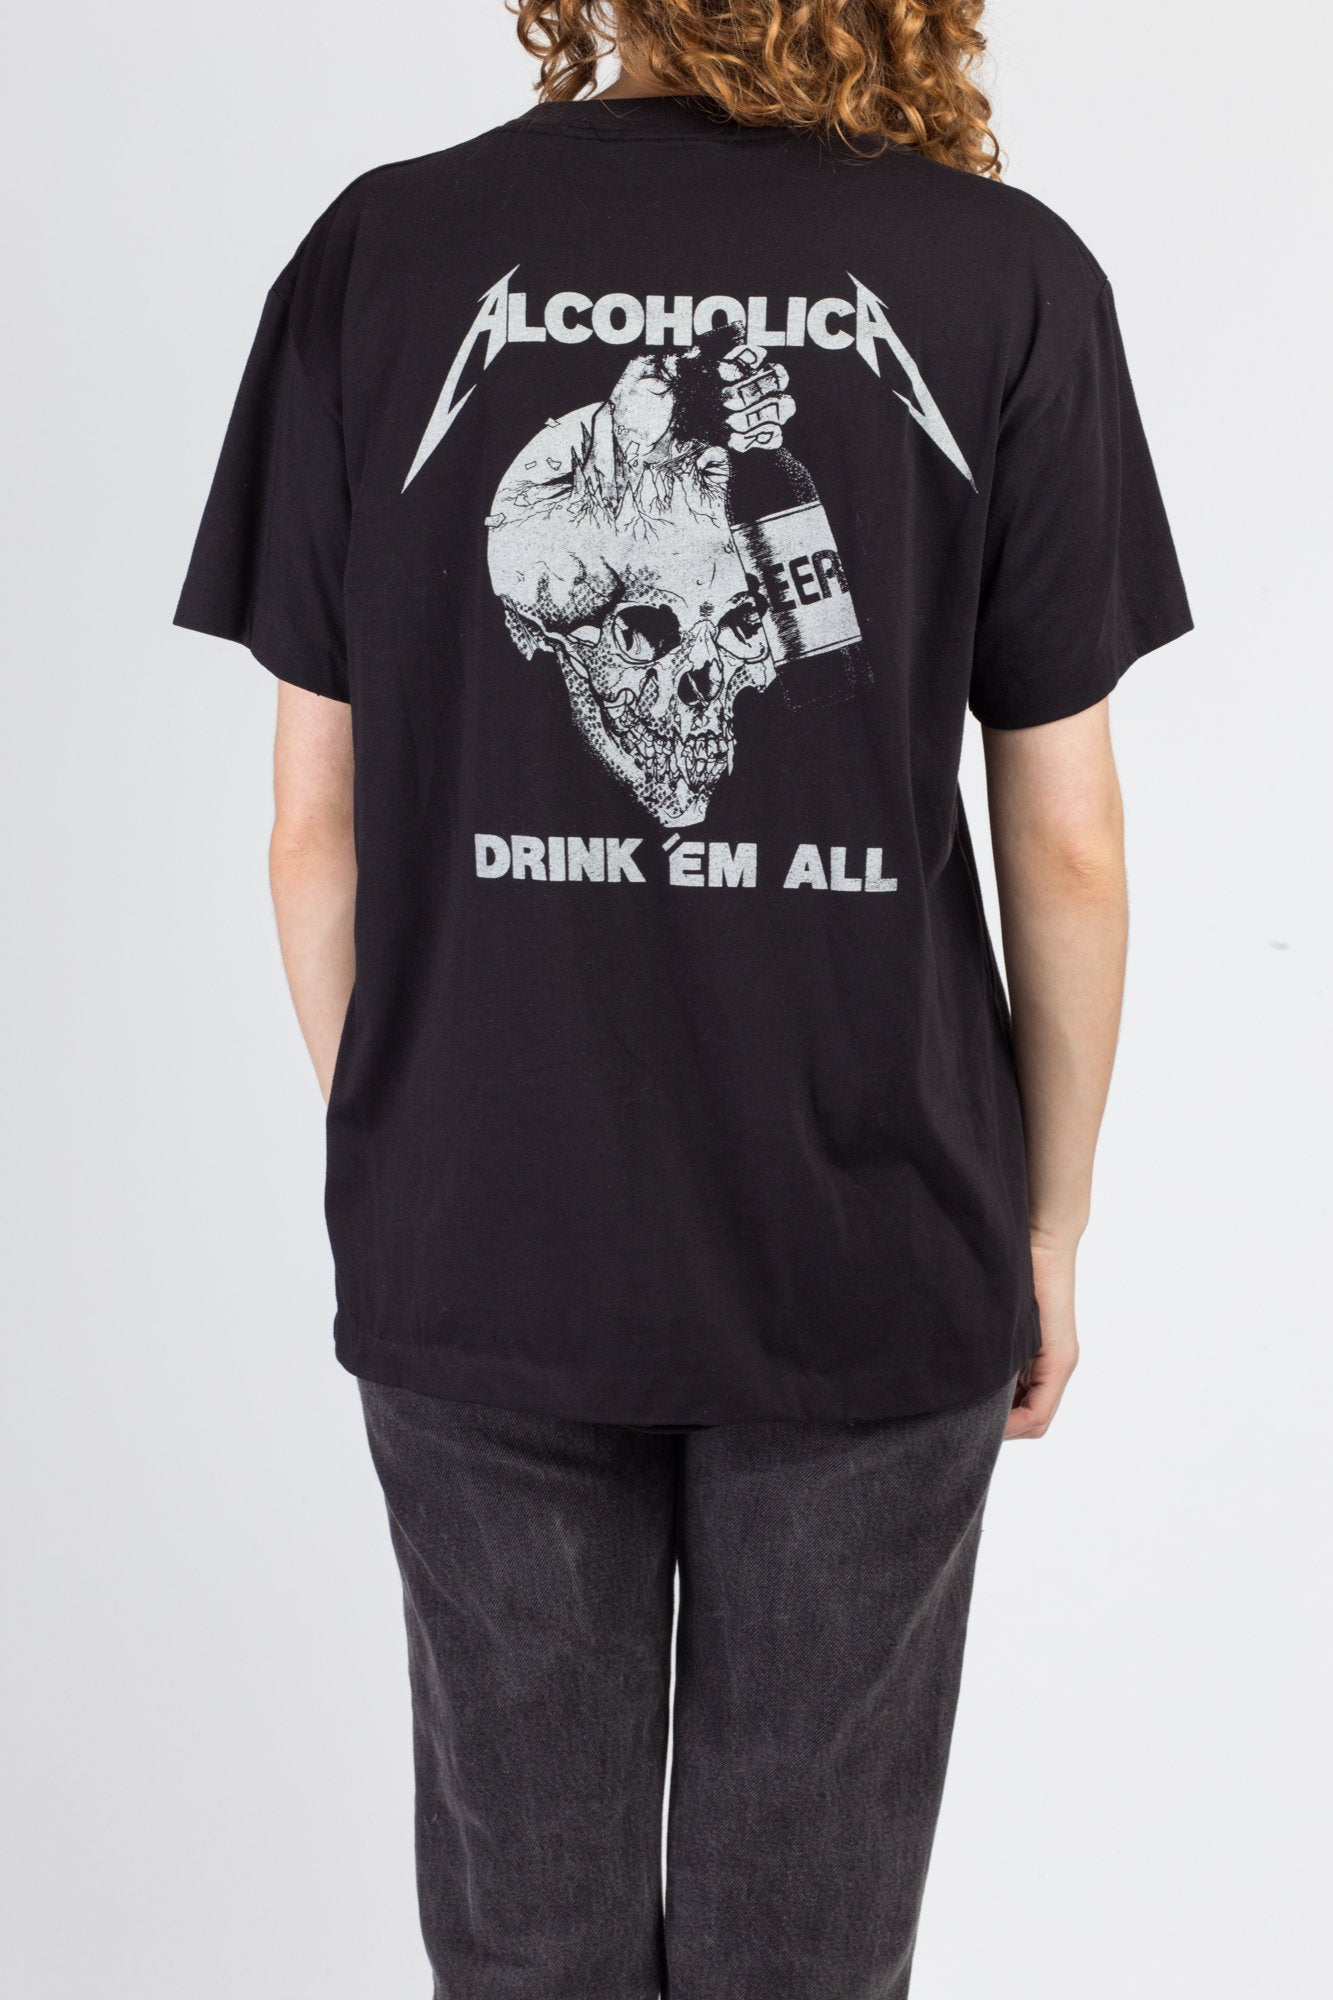 1989 Metallica And Justice For All Alcoholica T Shirt - Men's Large